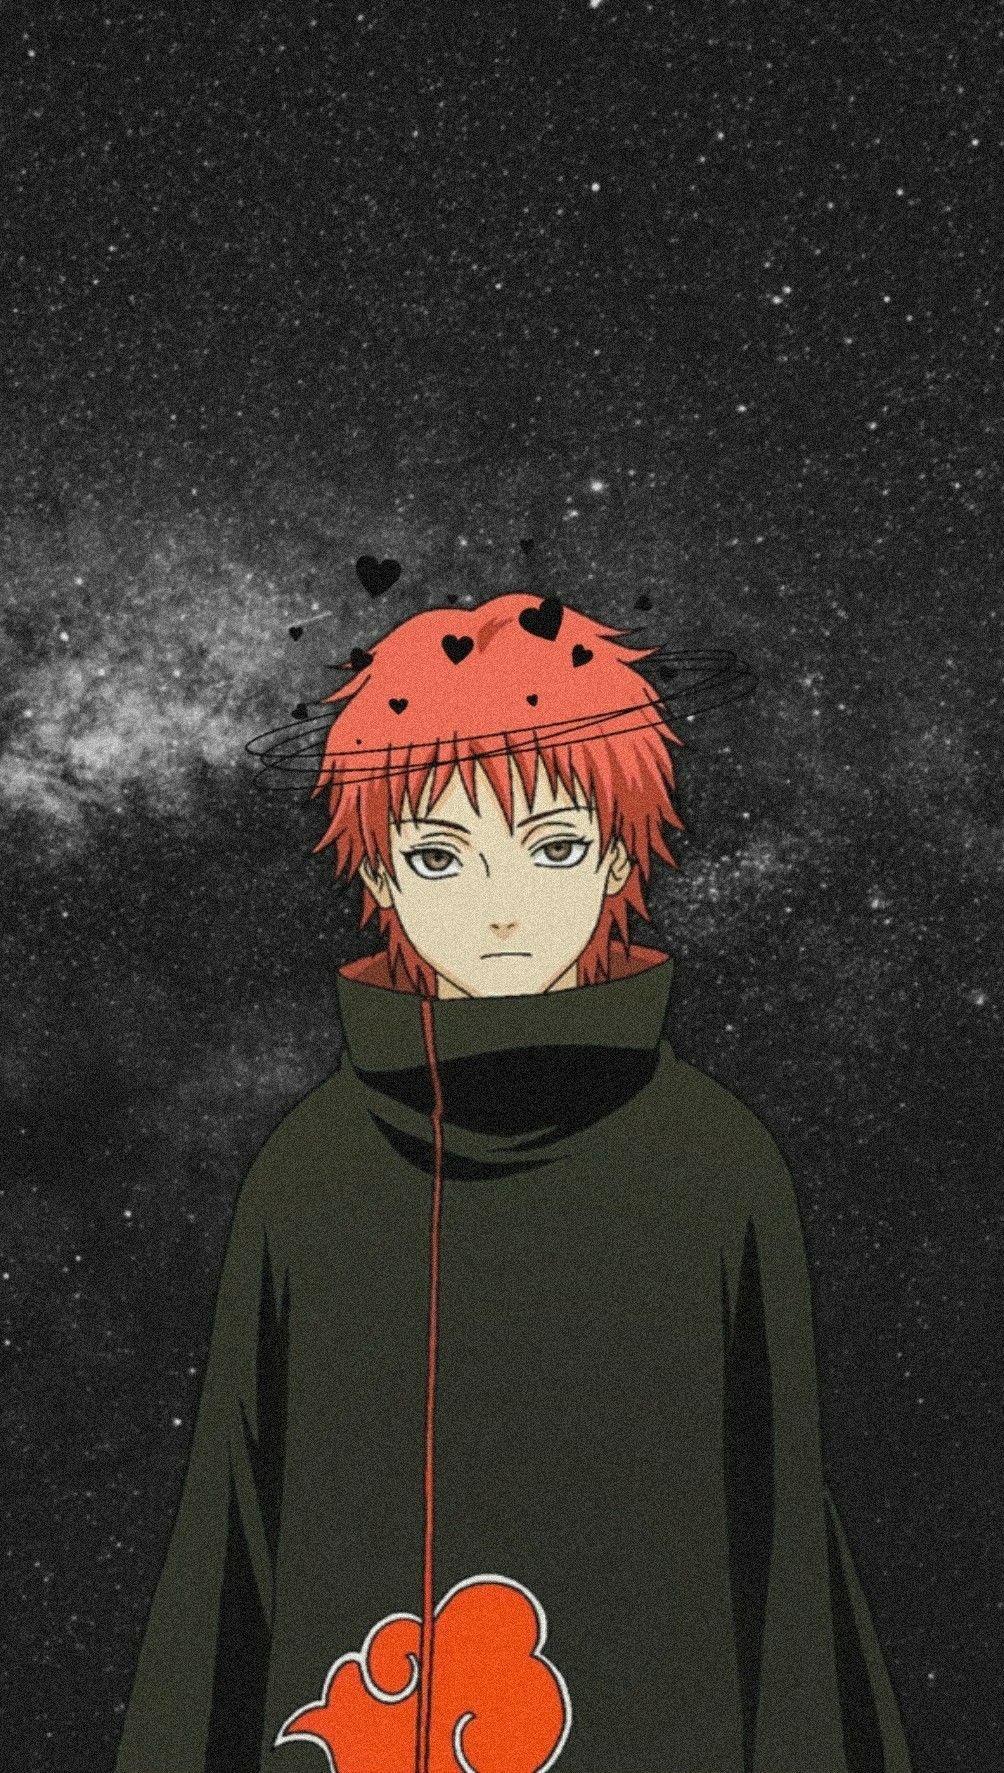 Sasori Walllpaper Hd Instagram Vargz7 In 2020 With Images